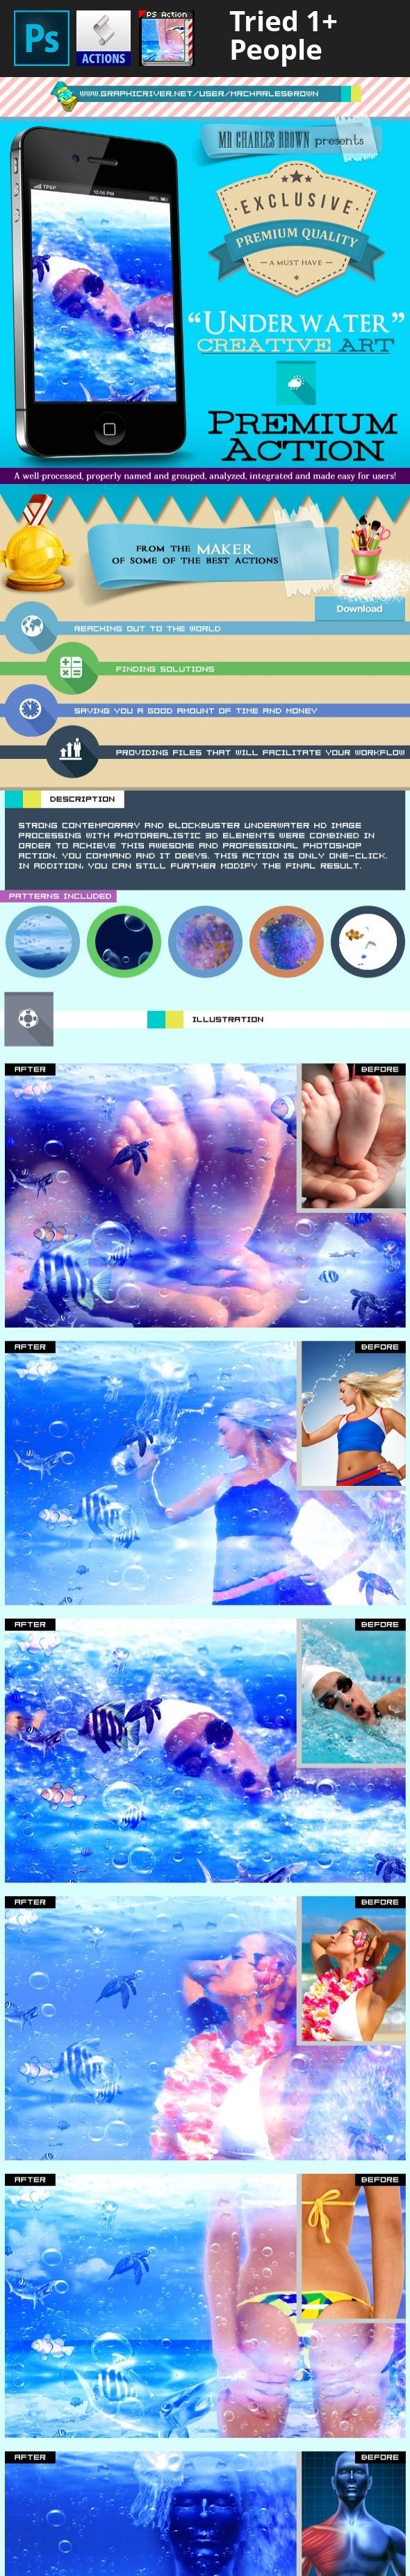 aqua, contemporary, Creative Underwater Art, epic, Graphicriver Image Action, Graphicriver image effects, HD color, hd photos, HDR legendary, high definition, high dynamic imaging, non-destructive actions, photo effects, photoshop add-on, photoshop image action, Photoshop Image effects, premium photoshop actions, underwater image effect, vivid images, water, water proof camera    From the Maker of:  Advance Flame Hand Drawing   PACKAGE DETAILS:  Package name: Creative Underwater Art…